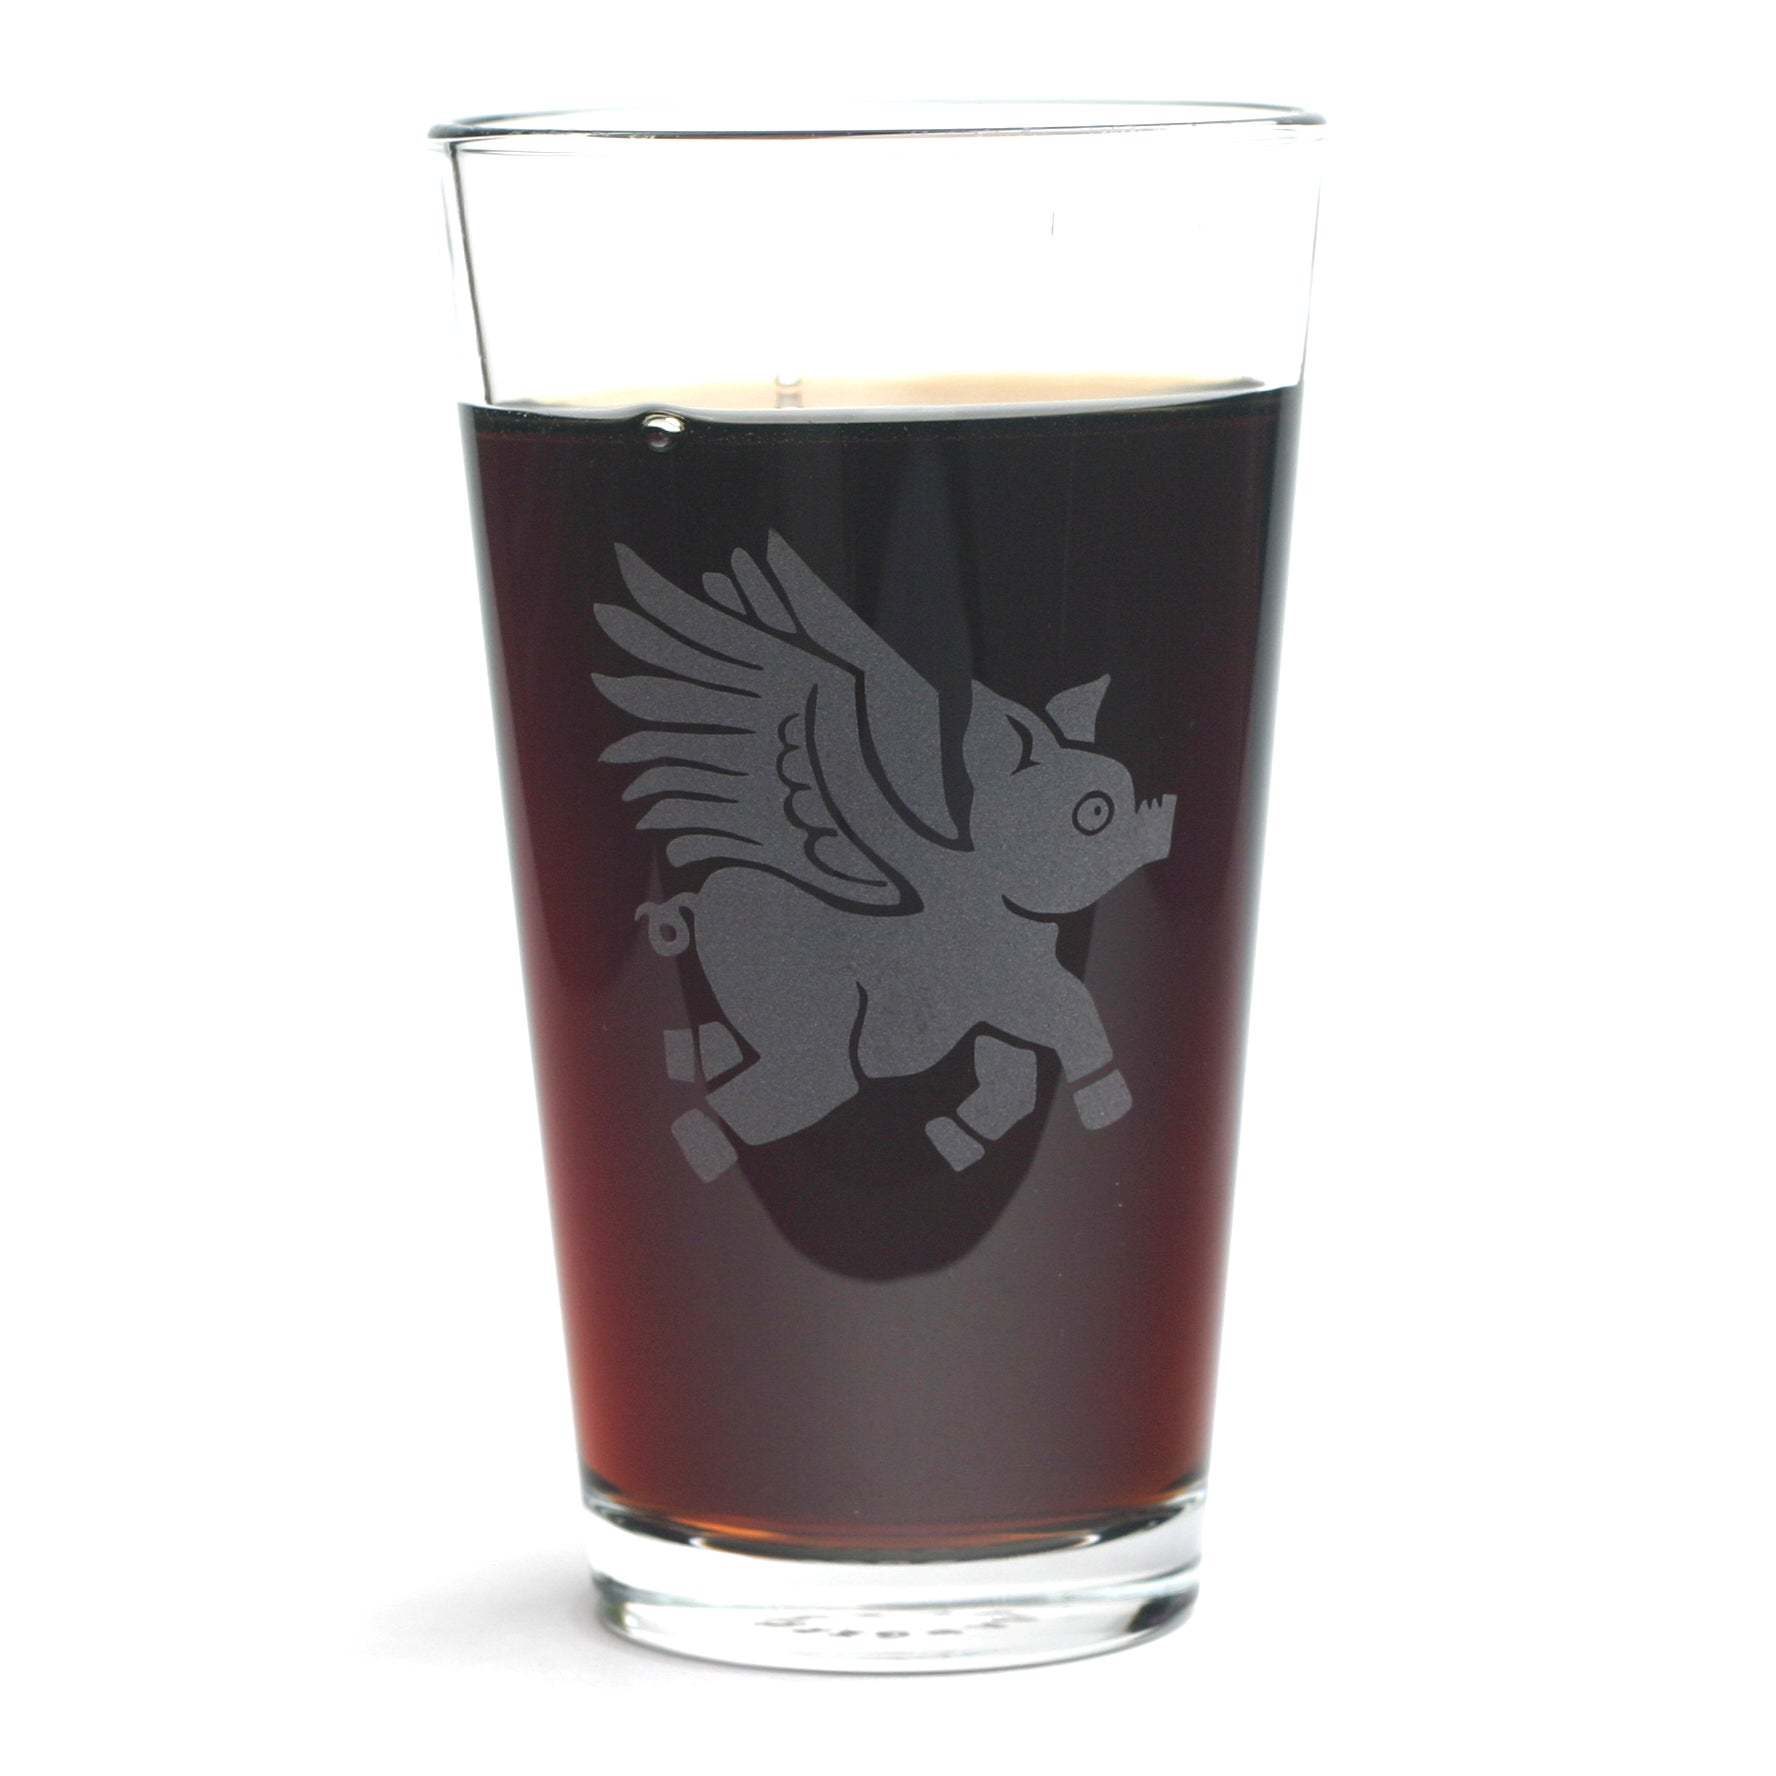 Flying Pig pint glass by Bread and Badger